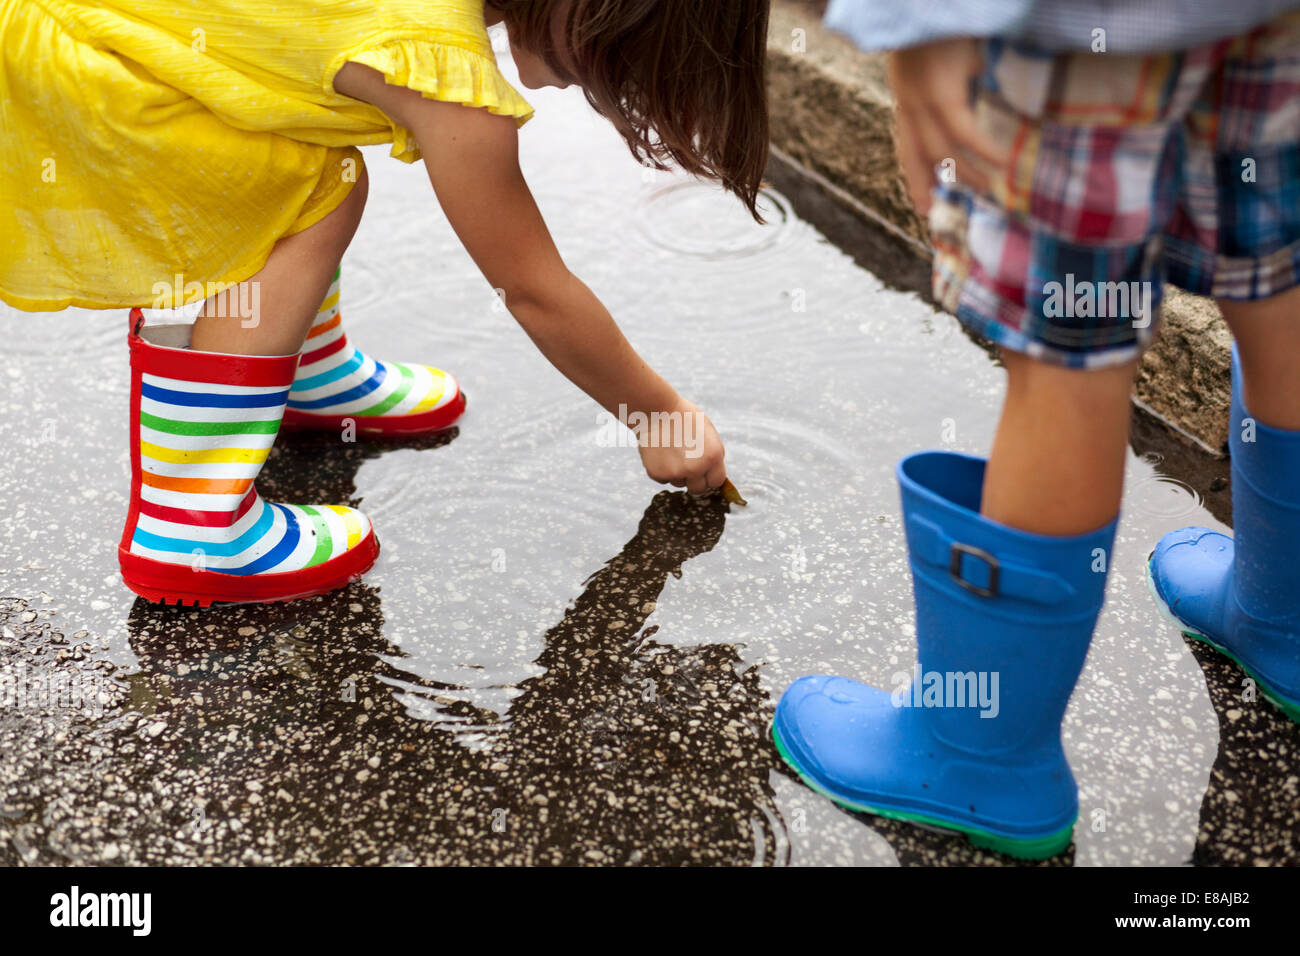 Boy and sister wearing rubber boots looking down at in rain puddle - Stock Image